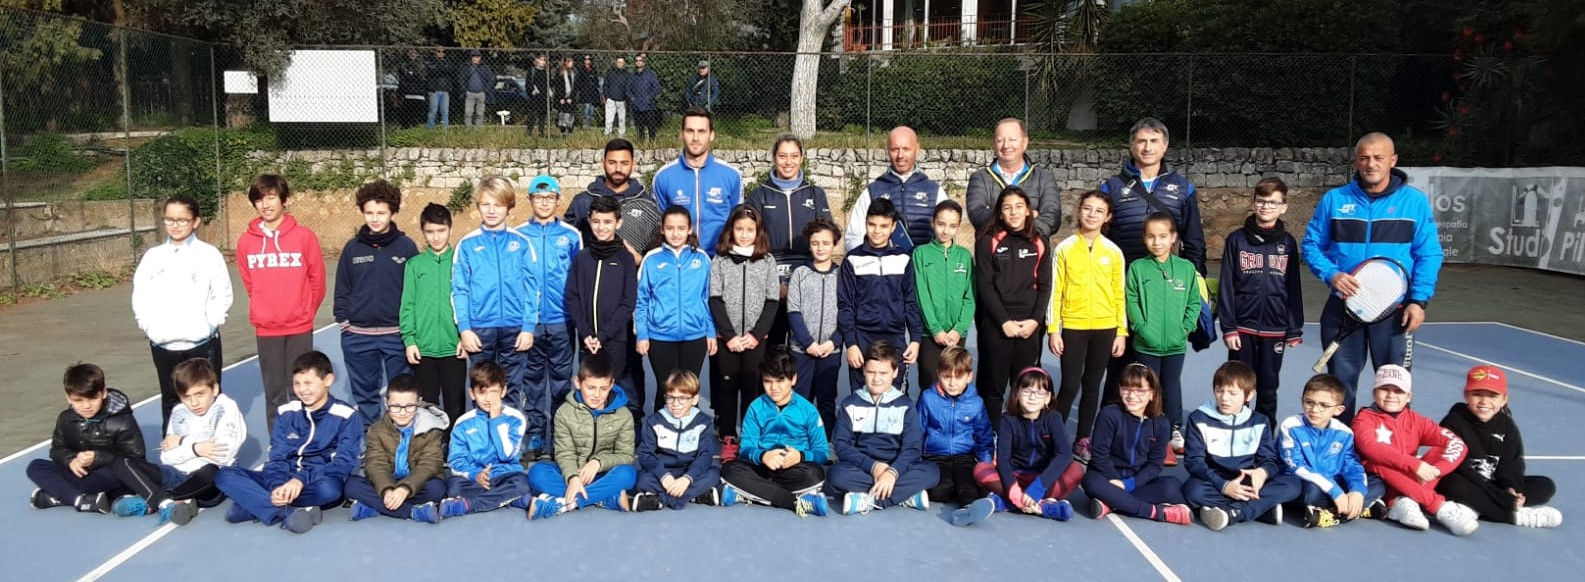 Modica, al Green Club stage di tennis: piccoli campioni crescono